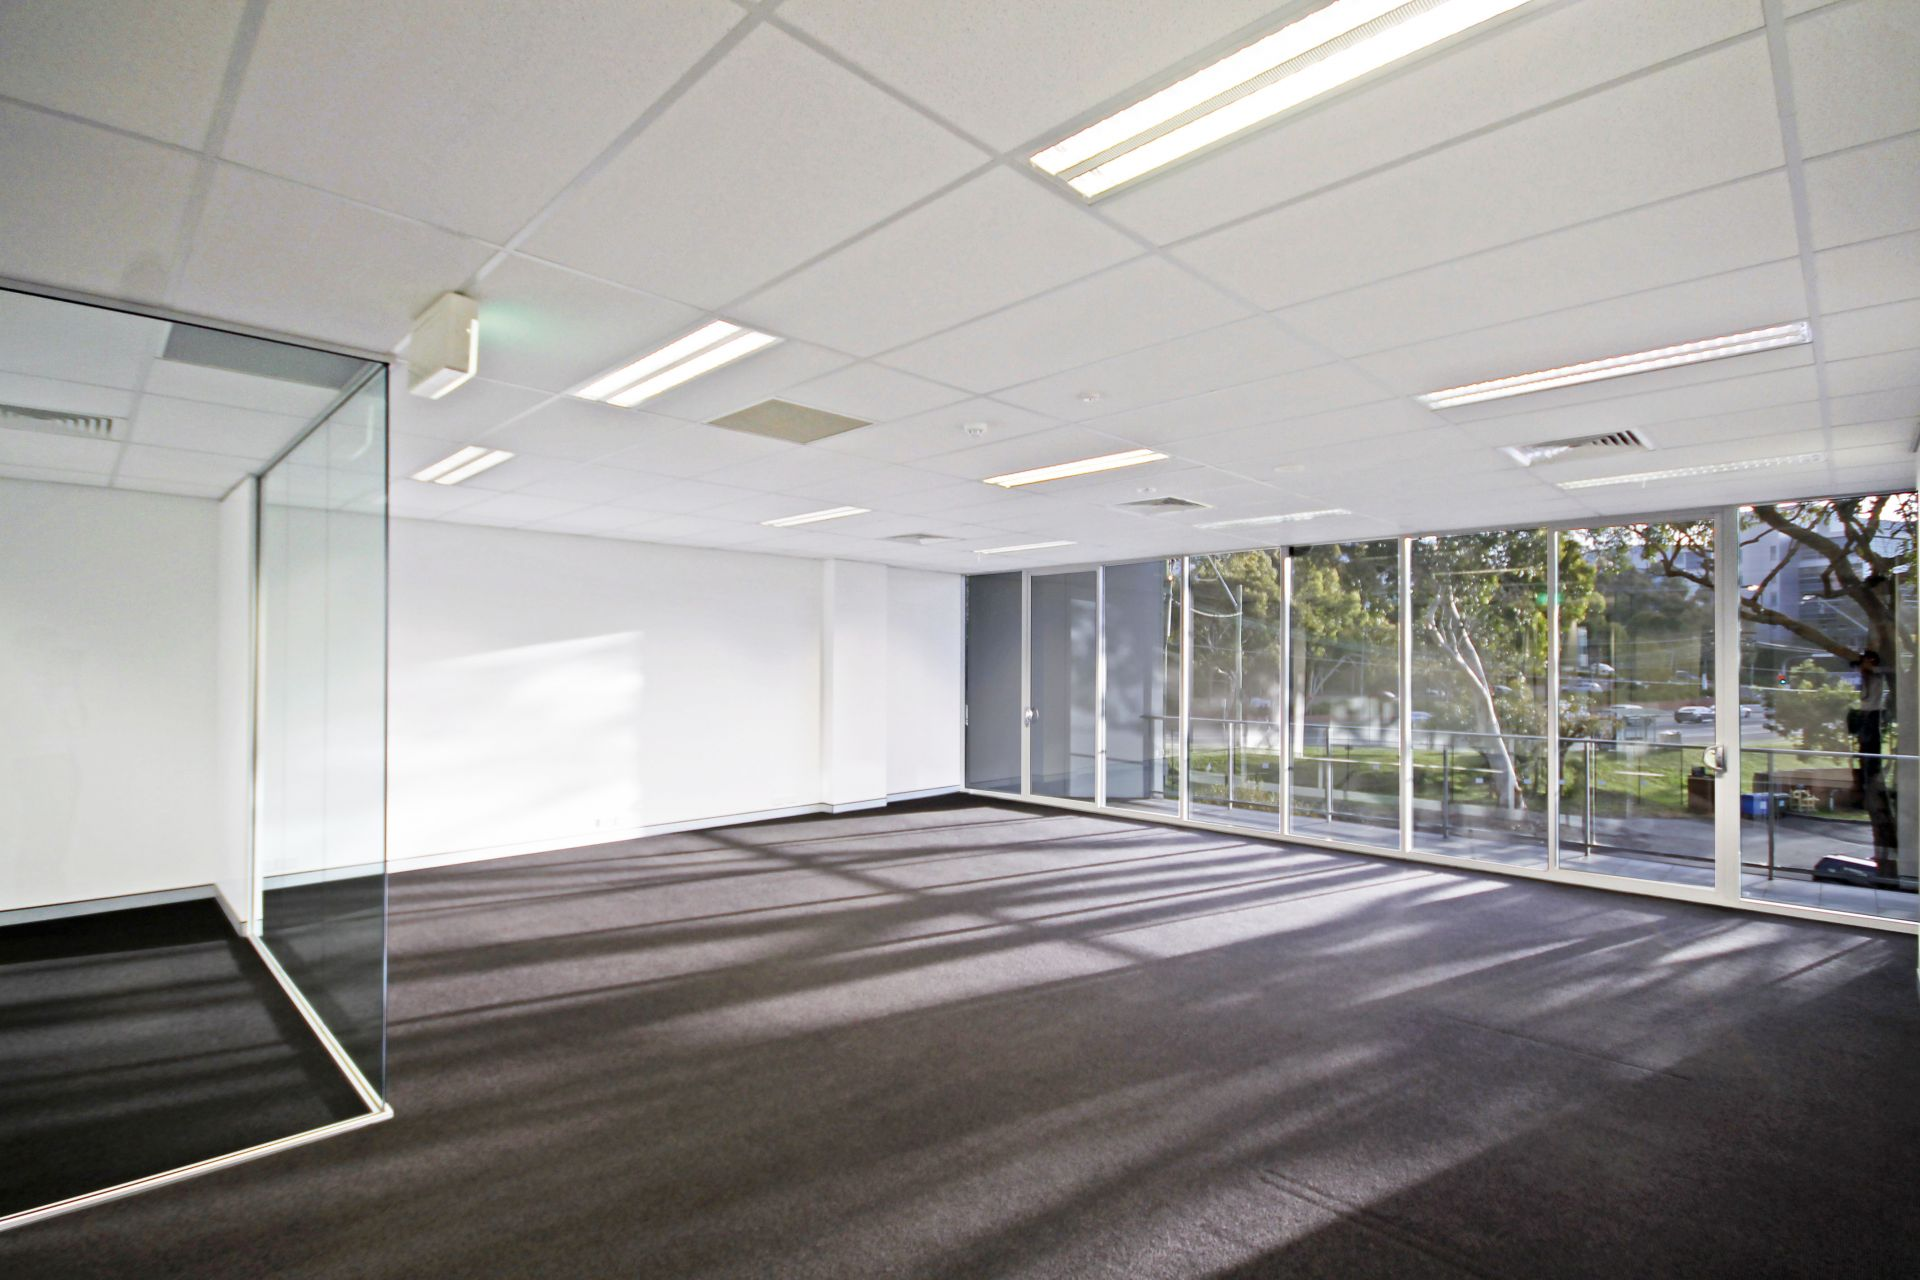 Superb Office Suite with quality fitout - 168m2